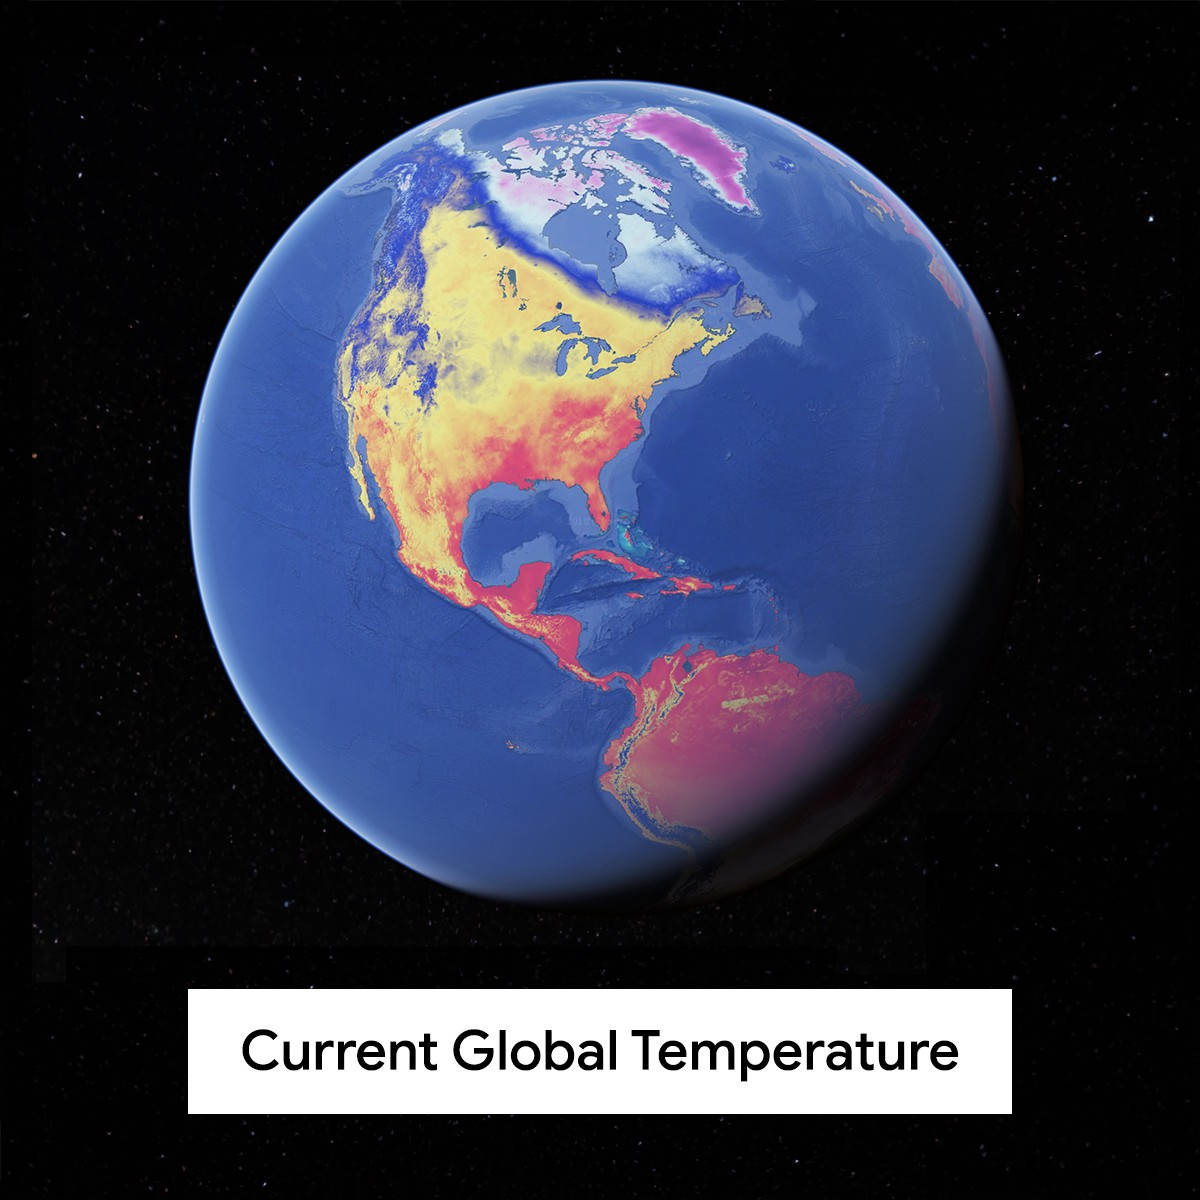 Temperature, wind speed, and precipitation: Explore weather data in